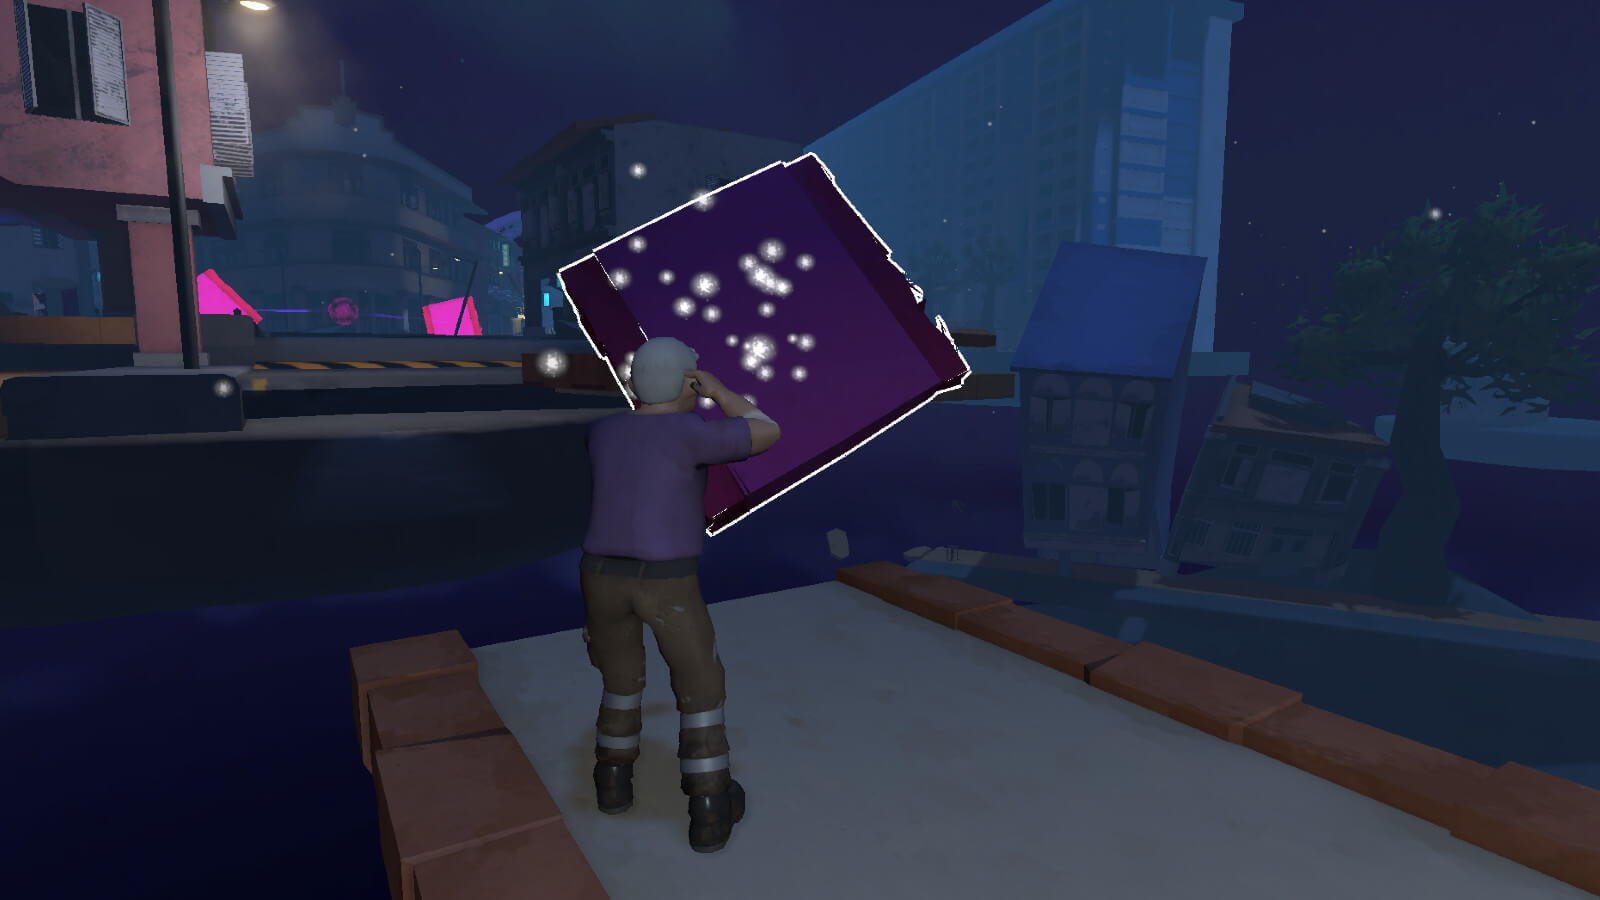 An old man with grey hair accessing a sparkling portal in a city